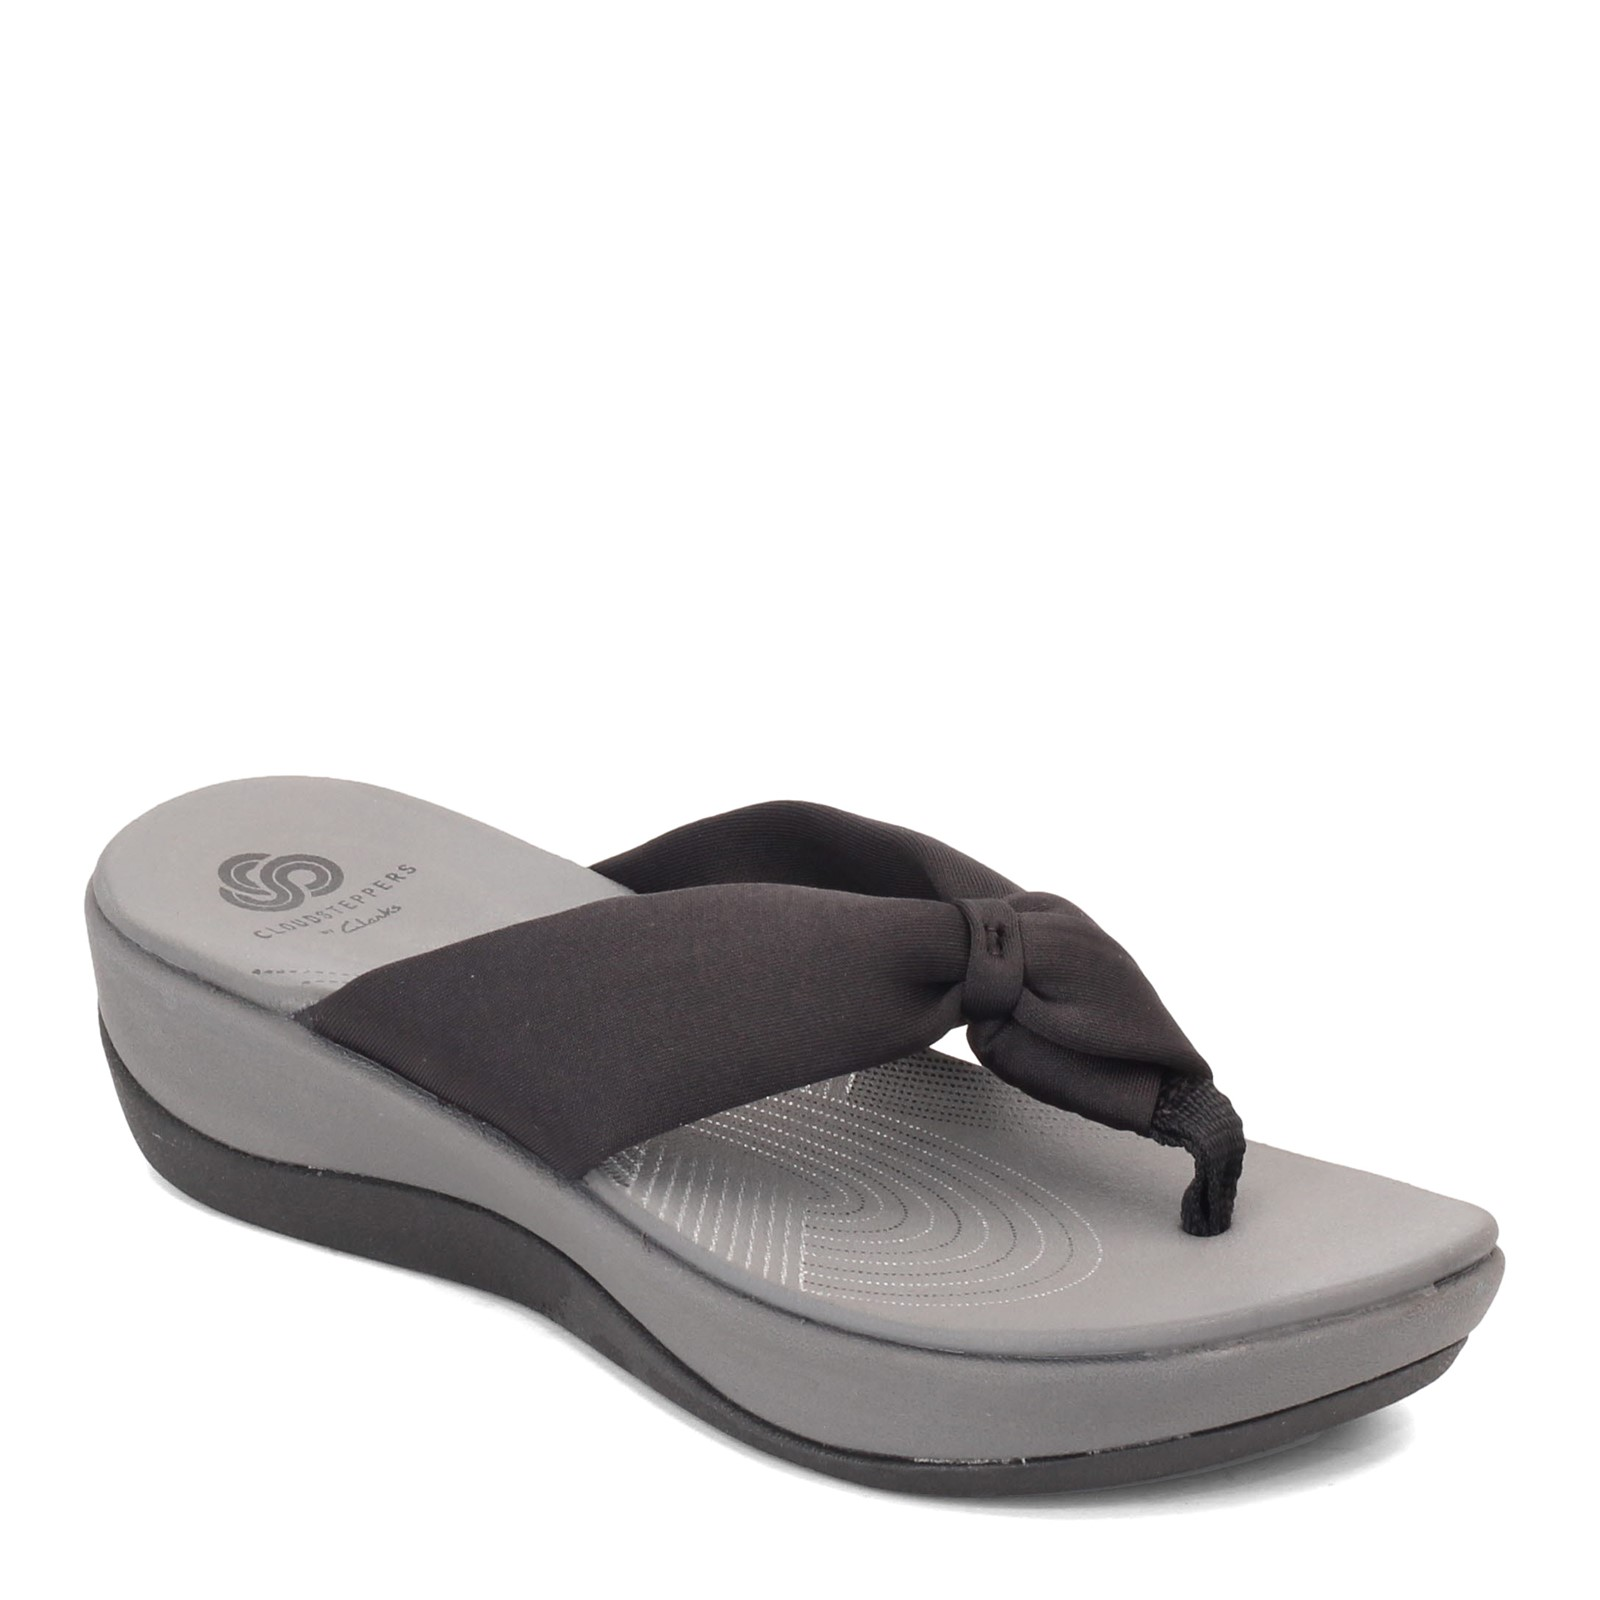 Women's Clarks, Arla Glison Thong Sandals